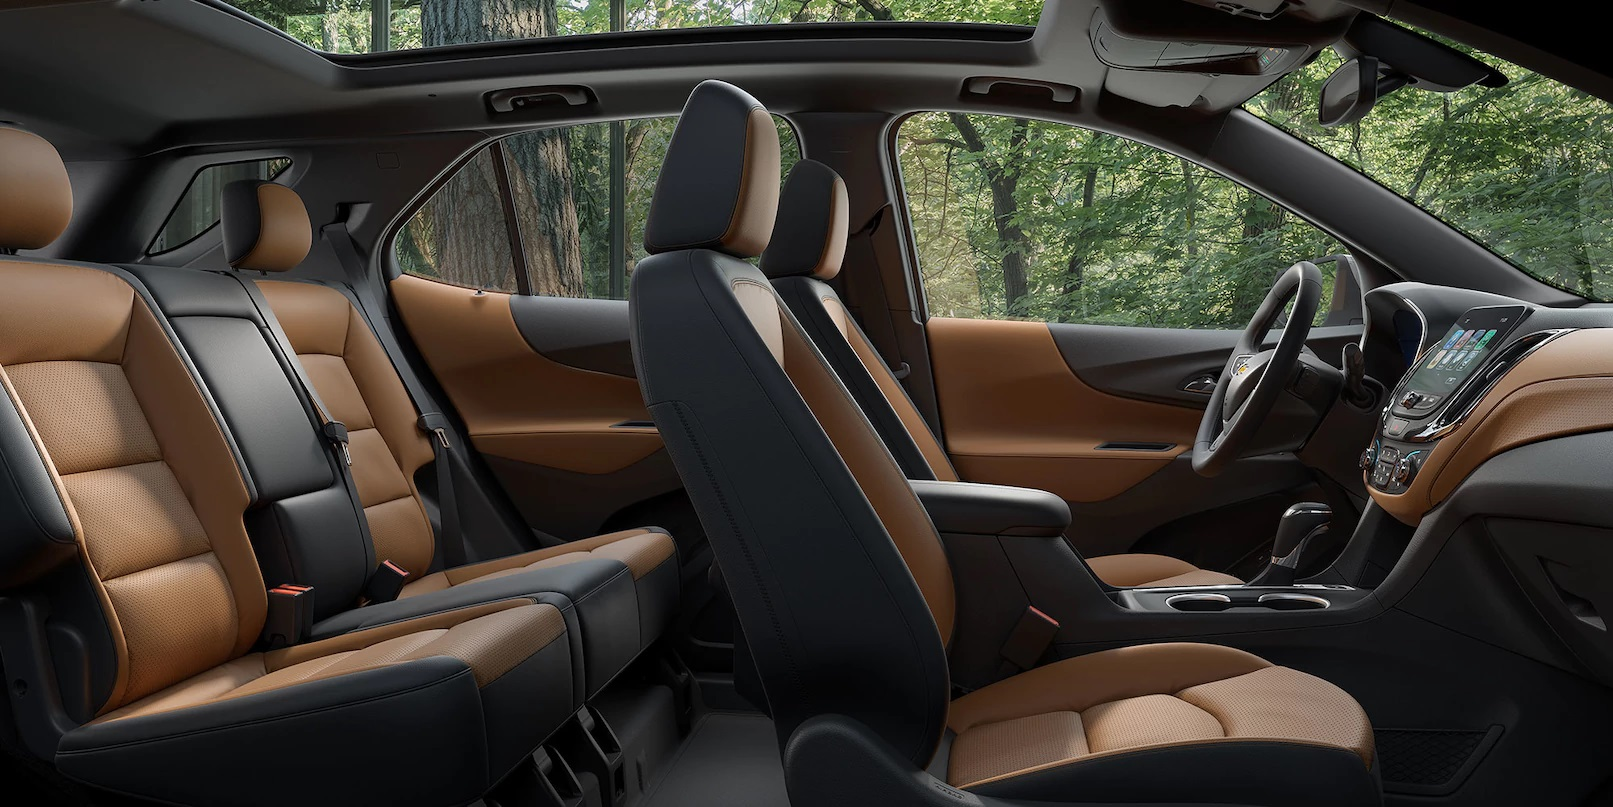 Spacious Interior of the 2018 Equinox